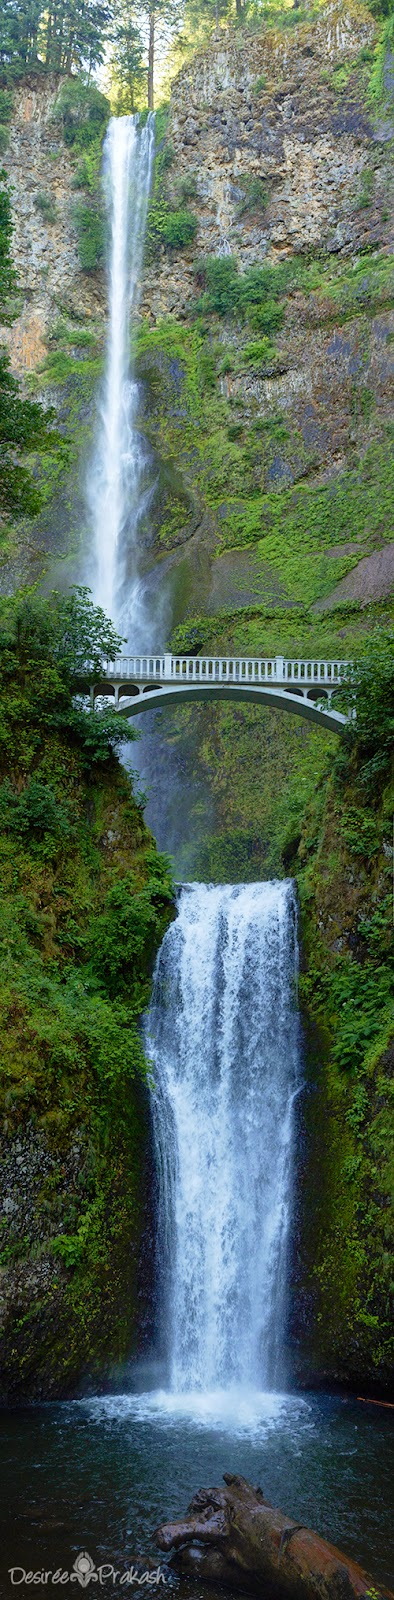 multnomah falls | Desiree Prakash Studio